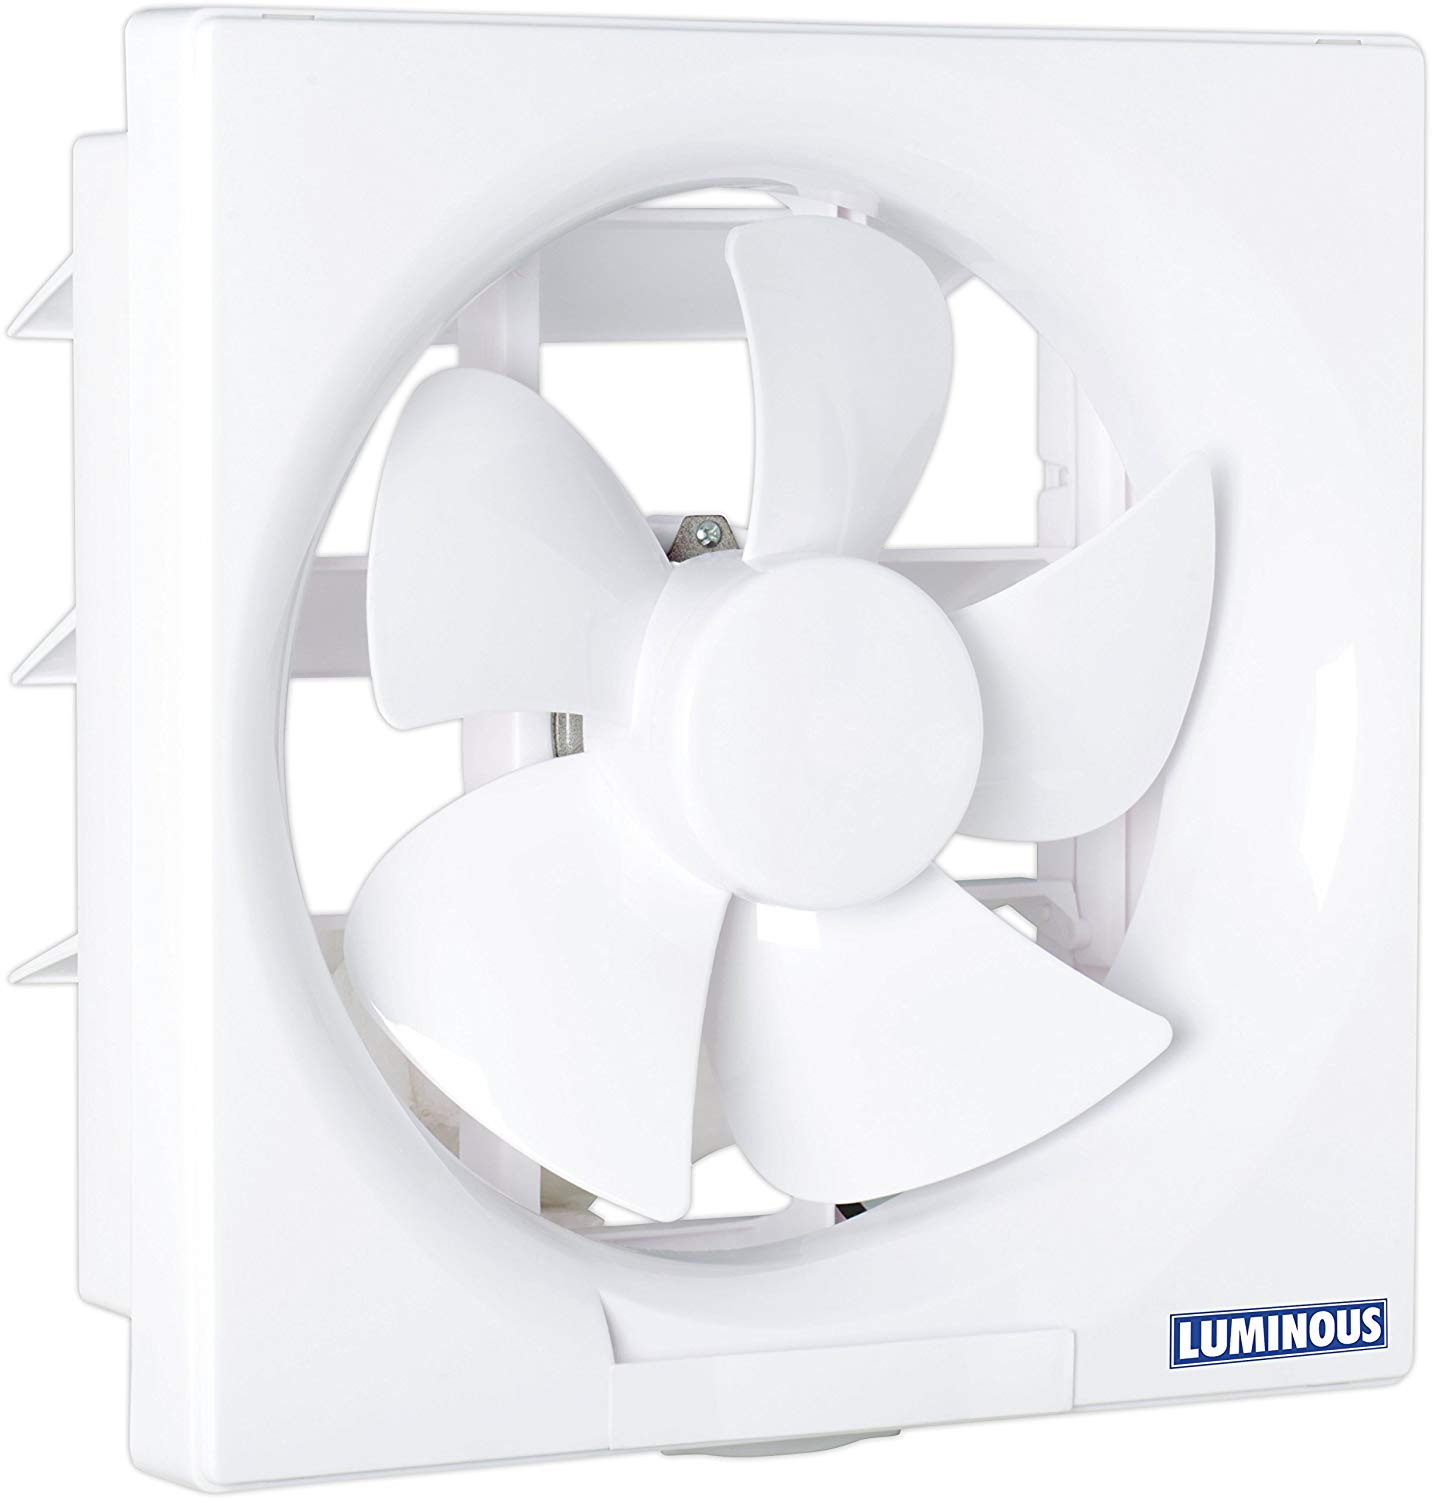 Luminous Vento Deluxe 200 Mm Bathroom Exhaust Fan